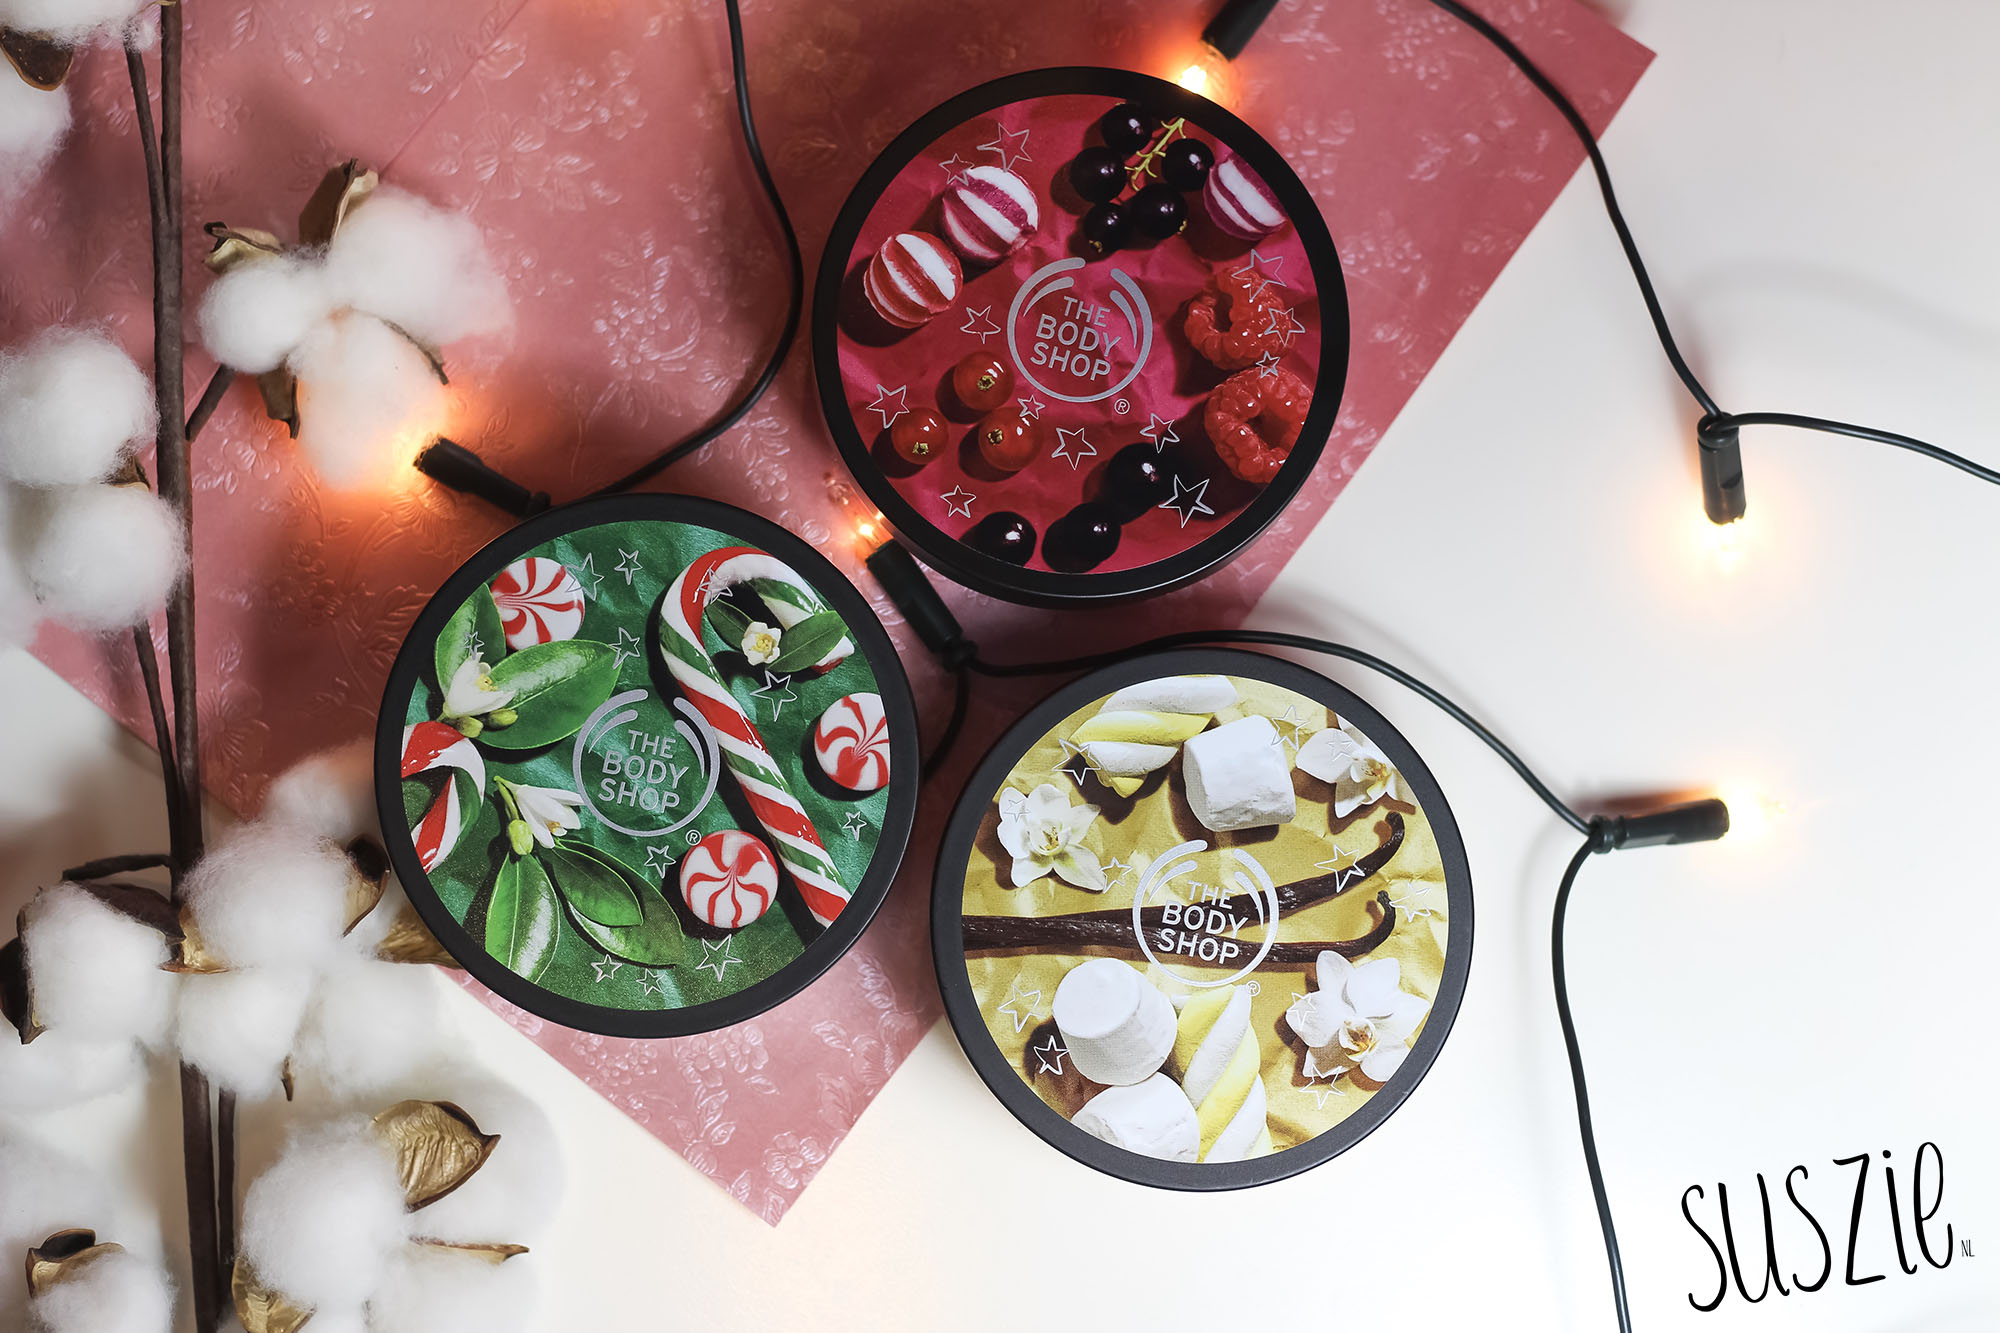 The Body Shop body butters kerst 2018